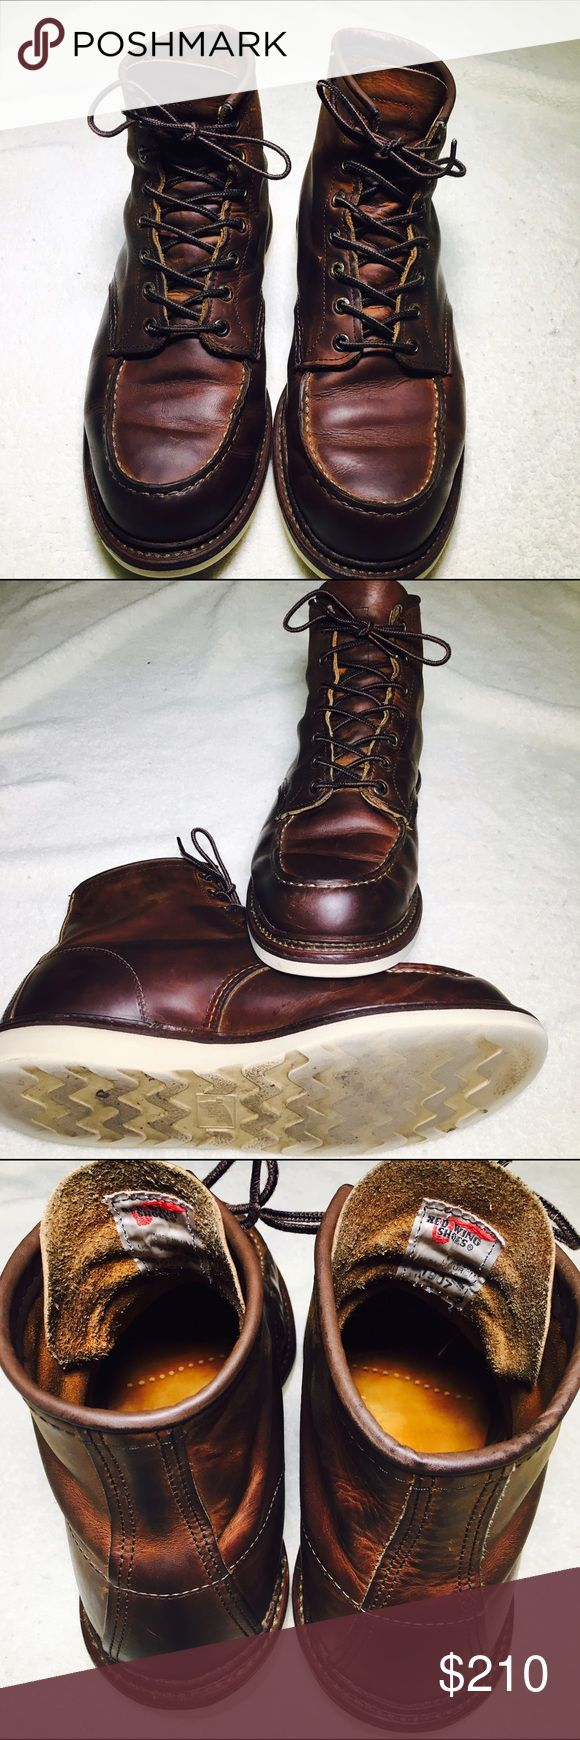 Red Wing 1907 Moc Toe STYLE NO. 1907 : CLASSIC MOC  Modeled after Red Wing's original work boot style, the 1907 is a 6-Inch Moc Toe featuring Copper Rough & Tough leather, white Traction Tred rubber outsole, Norwegian-like welt, triple stitched quality and leather laces. Red Wing Shoes Shoes Boots